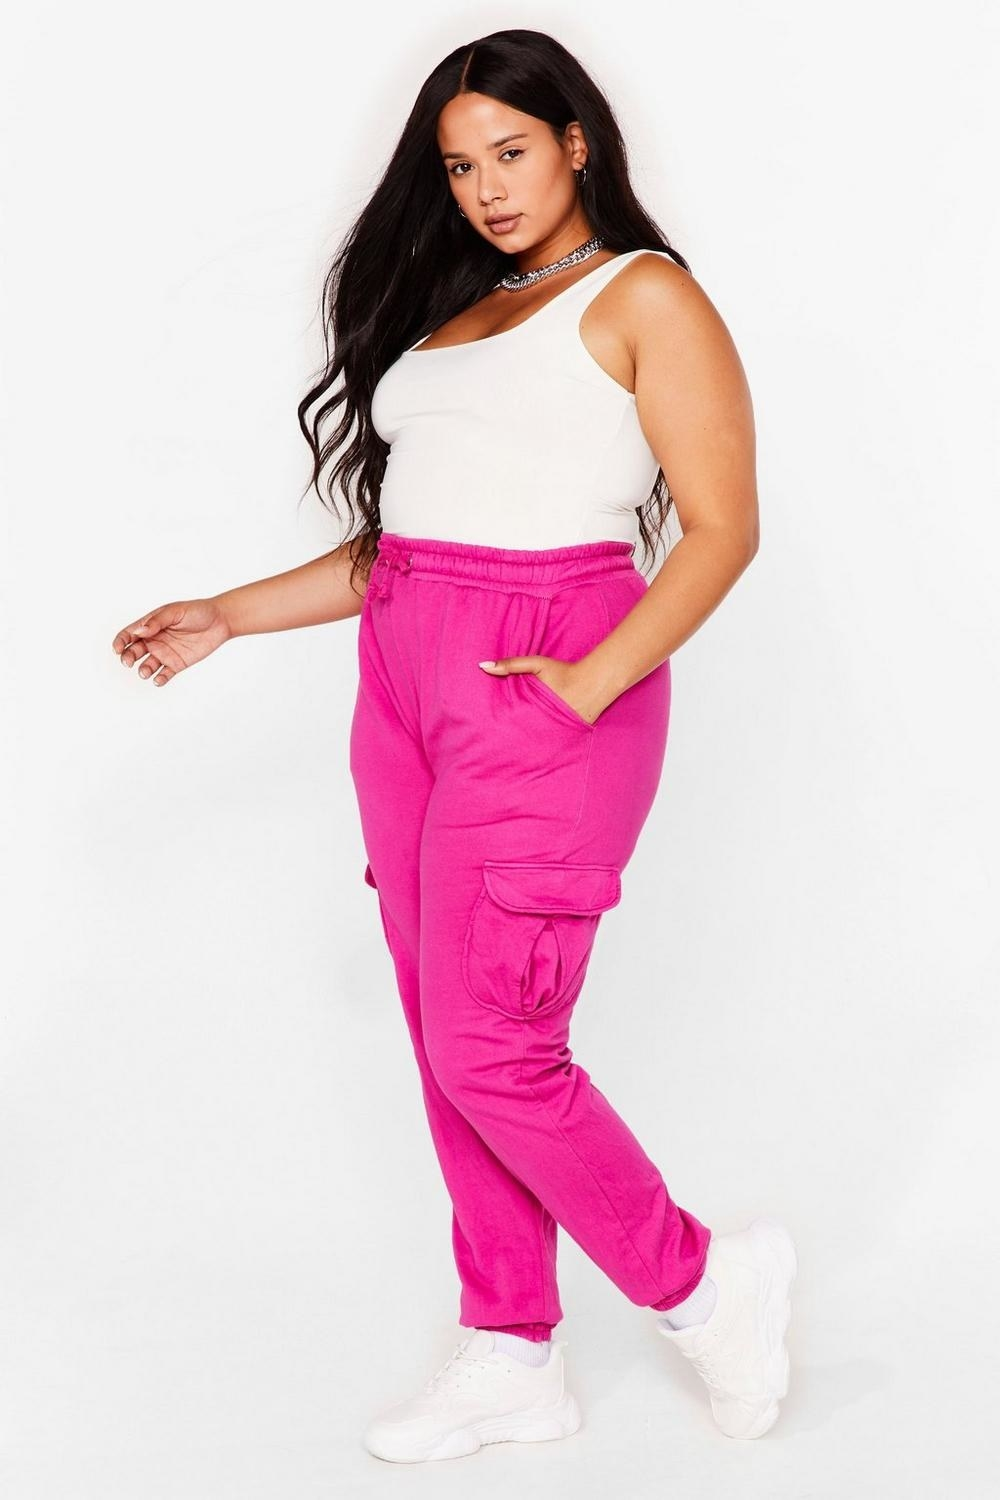 Model wearing the hot pink sweatpants with pockets on the side and thighs